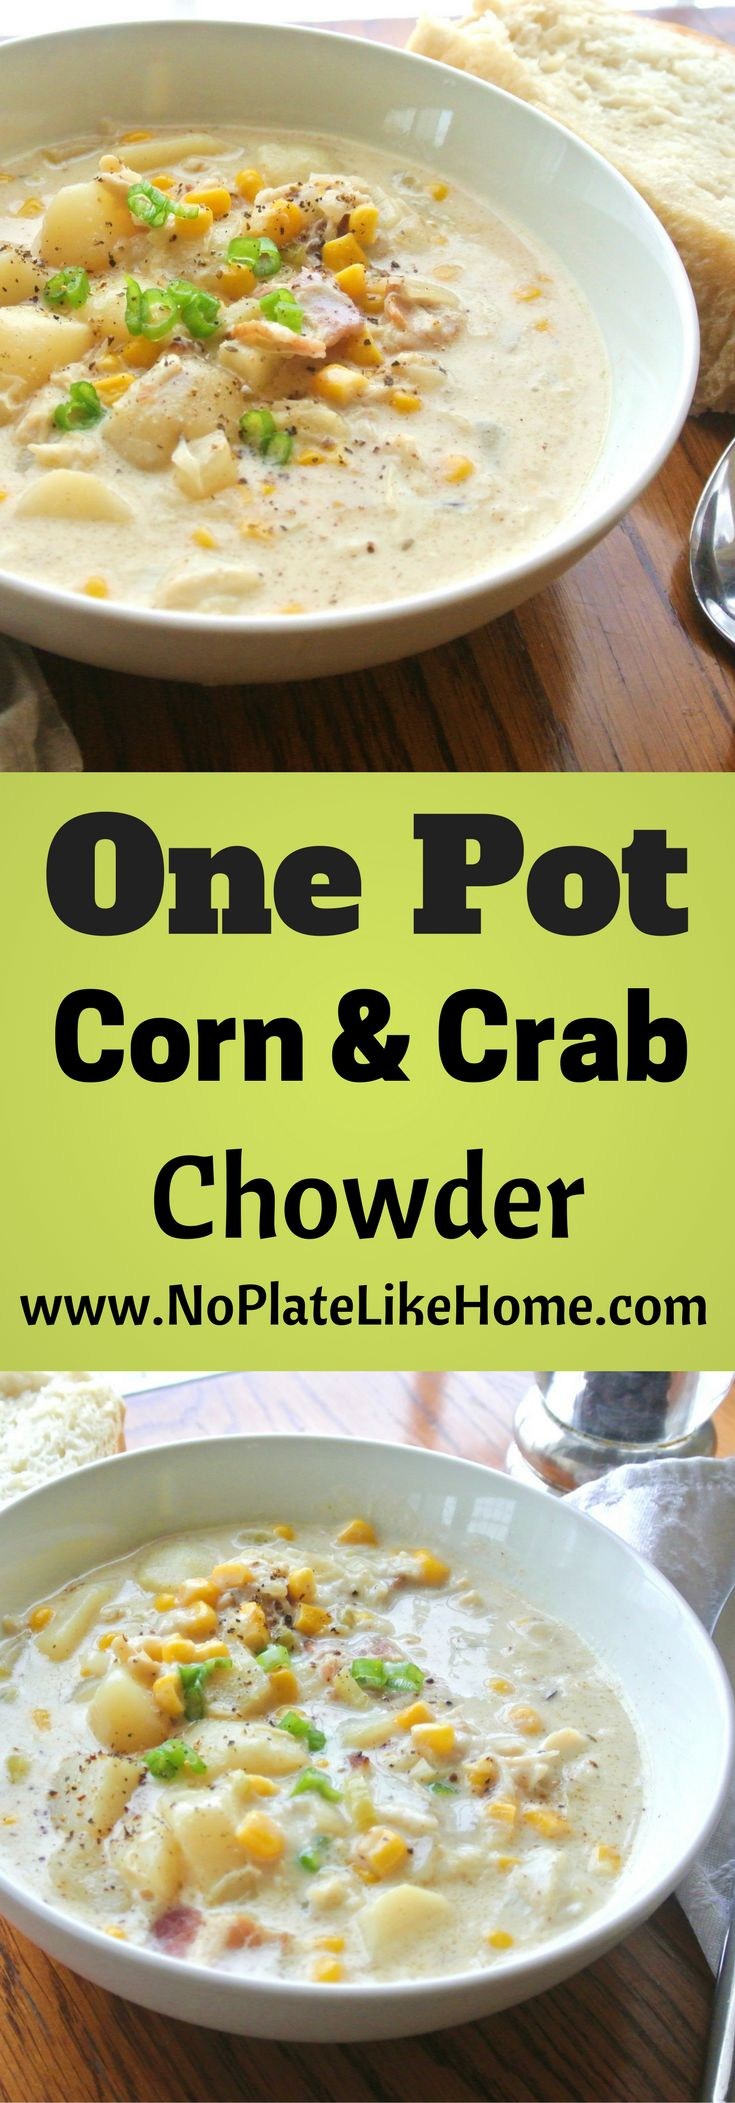 An easy, creamy and filling One Pot Corn and Crab Chowder. This recipe has bacon, cream, crab, corn, potatoes, celery, onions and carrots. Perfect for cold winter days. Pin it for later! #soup #cornandcrabchowder #souprecipes #onepotsoup #crabchowder #chowder